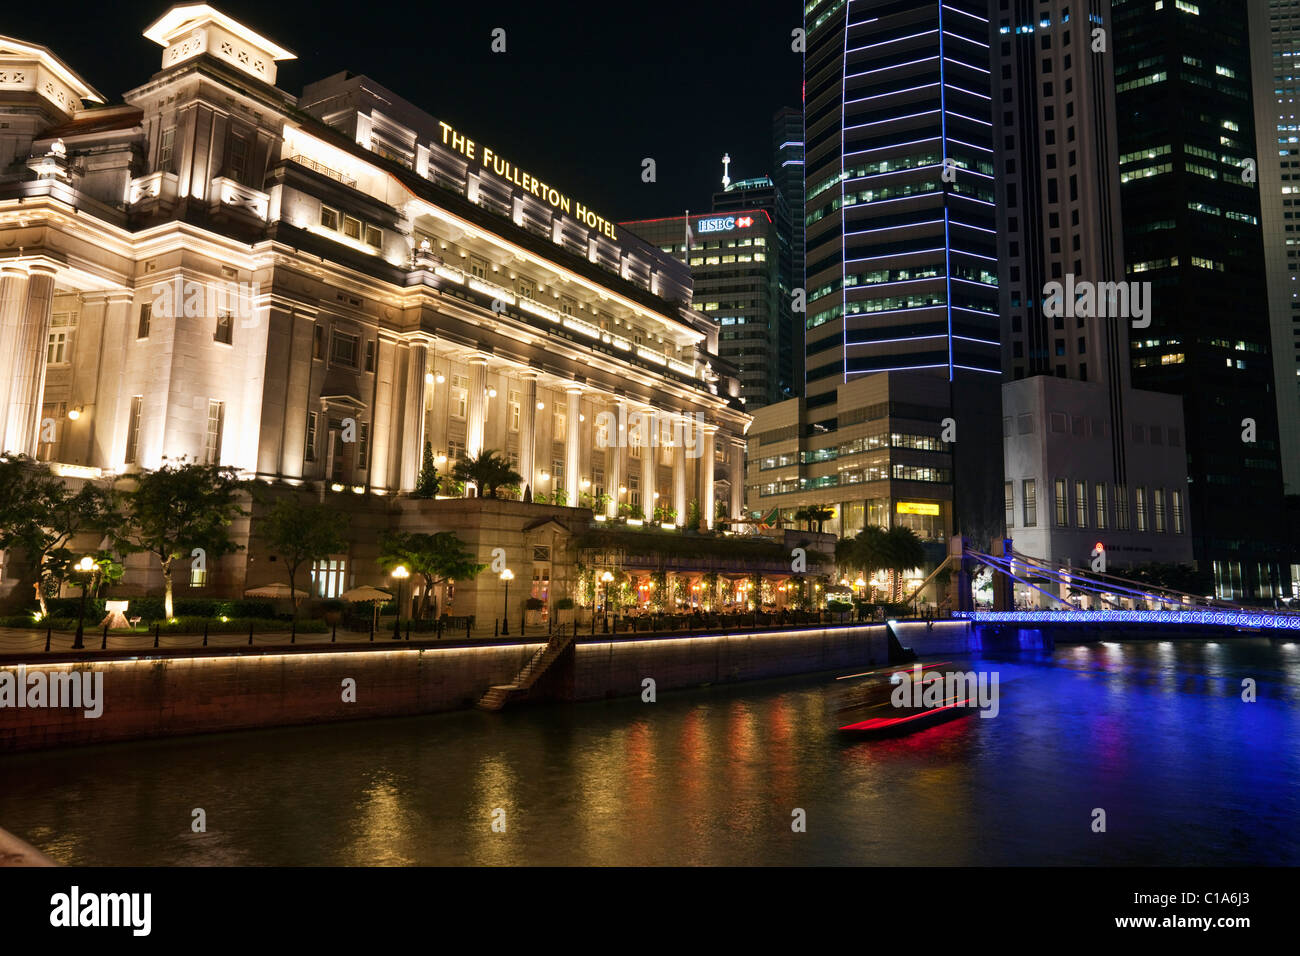 The Fullerton Hotel and Singapore River illuminated at night, Singapore - Stock Image